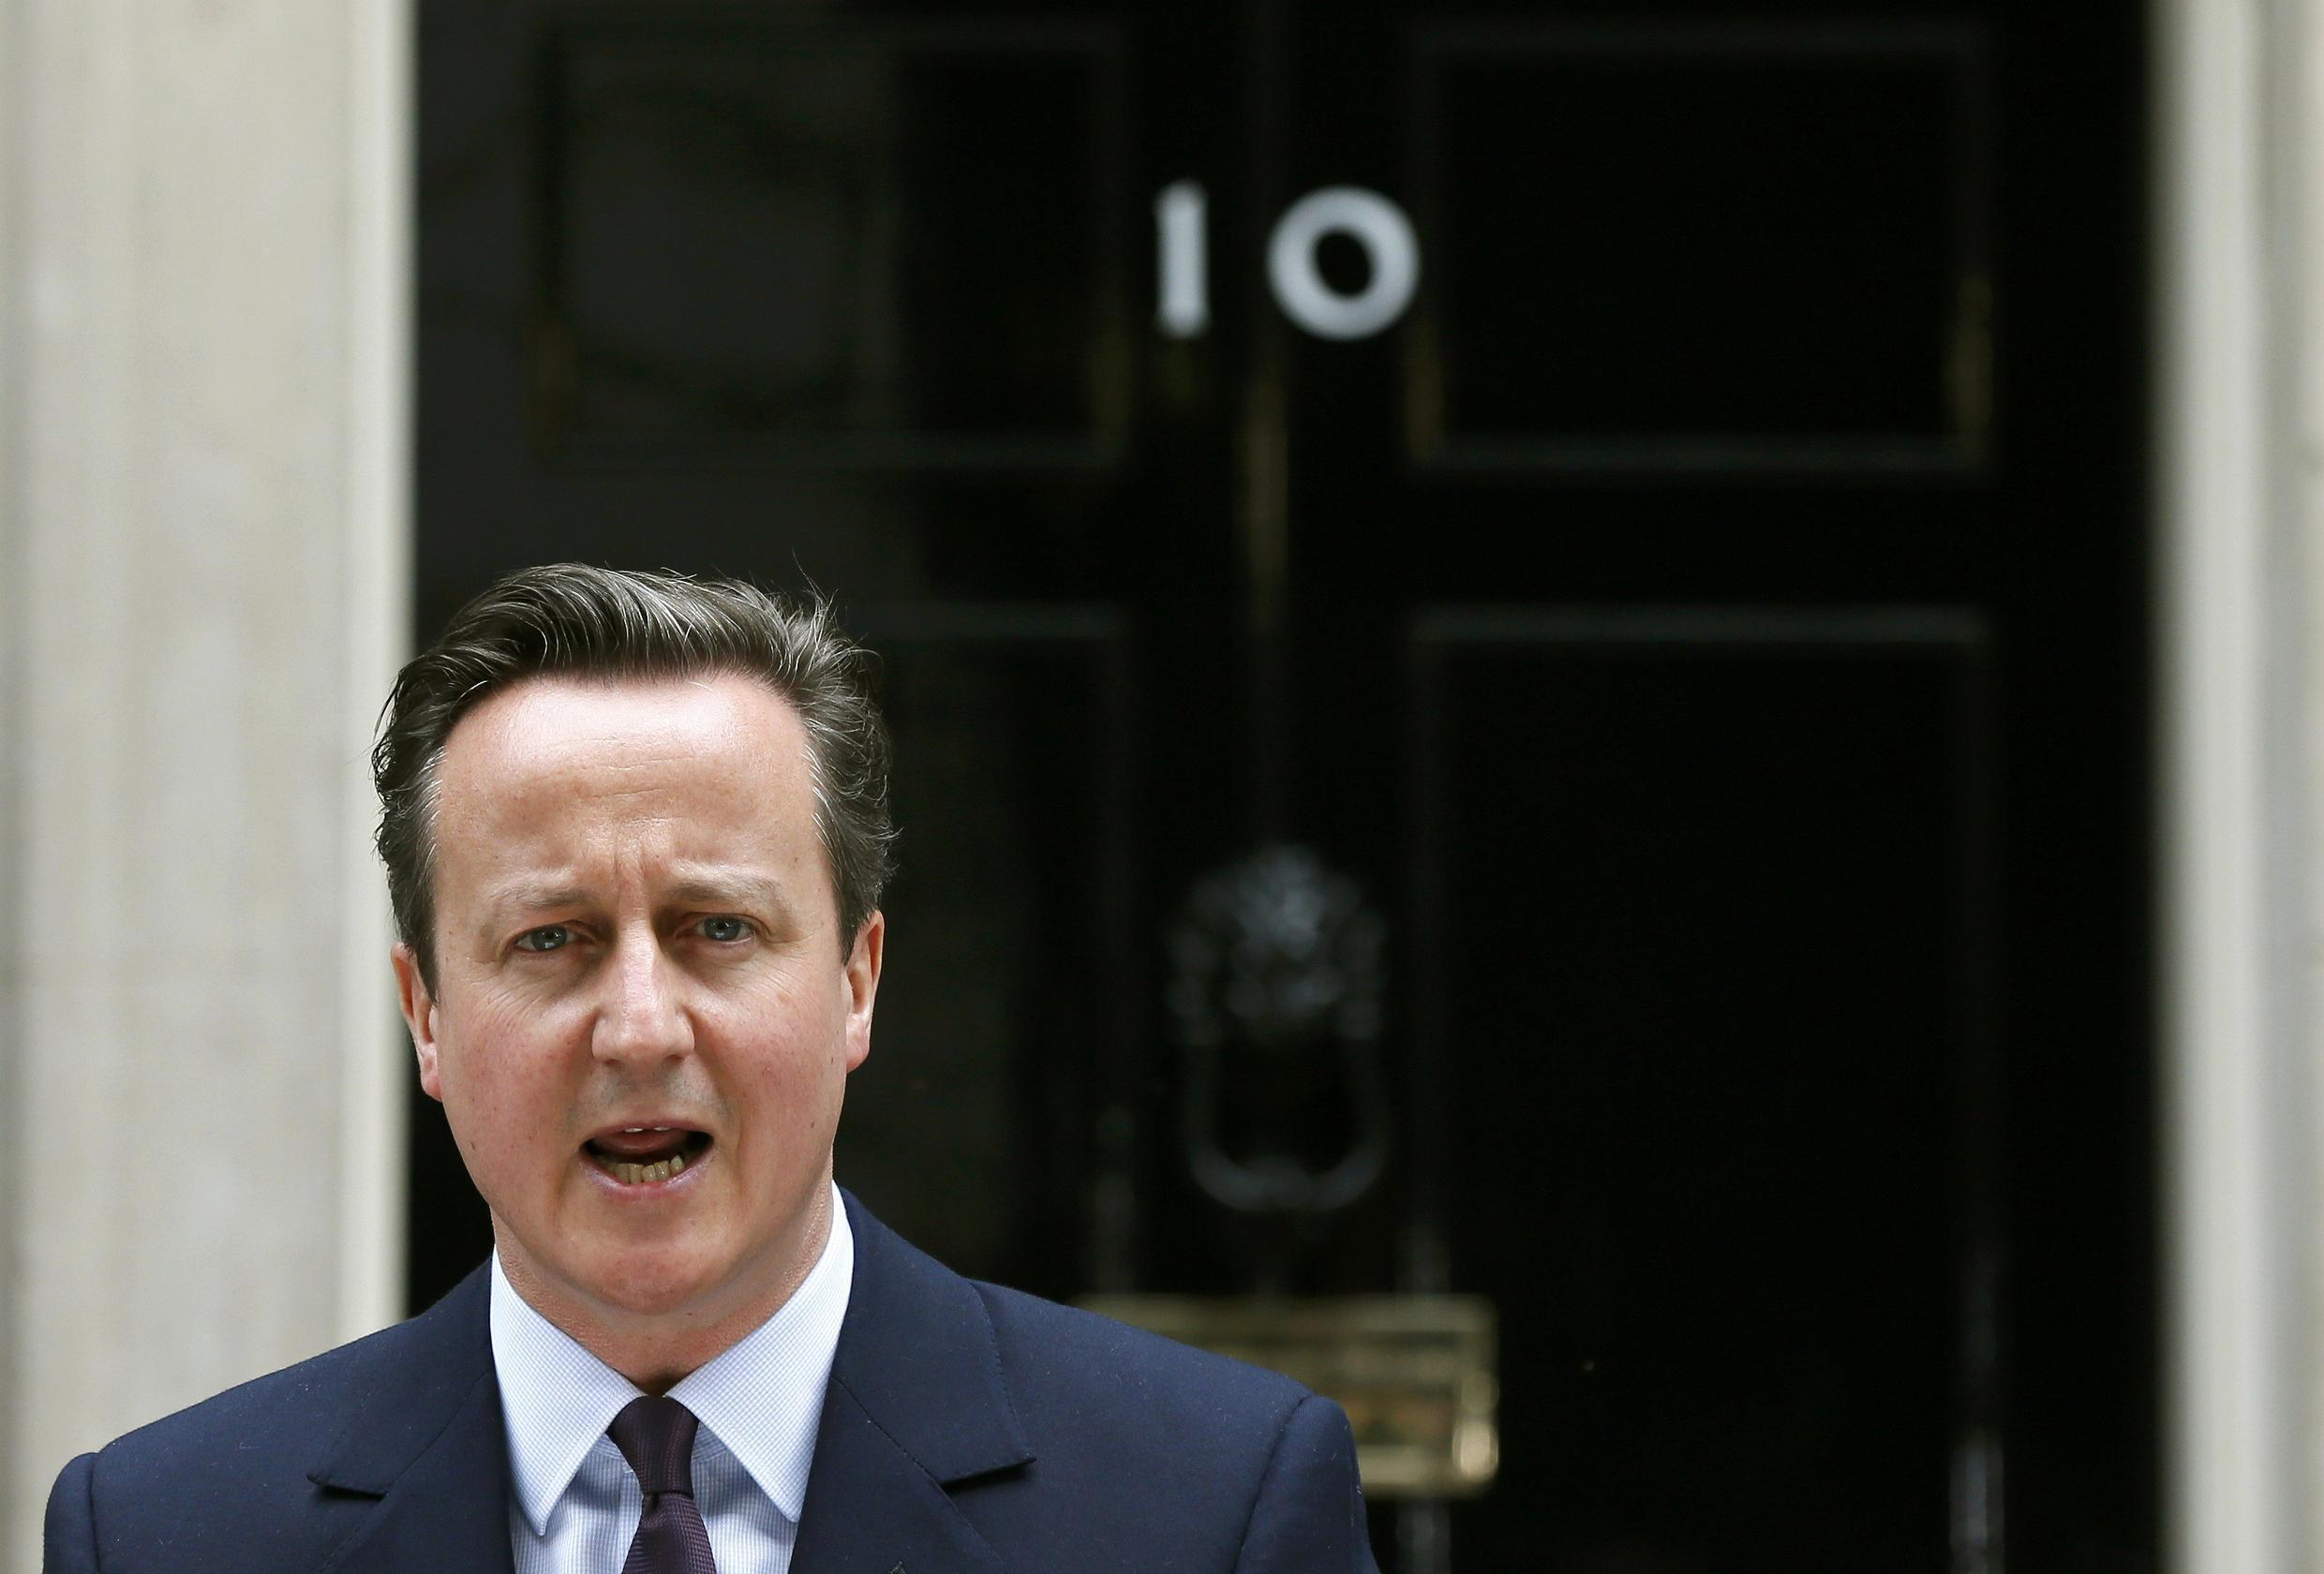 Britain's Prime Minister David Cameron, whose Conservative Party won an unexpected clear majority in Britain's election Thursday